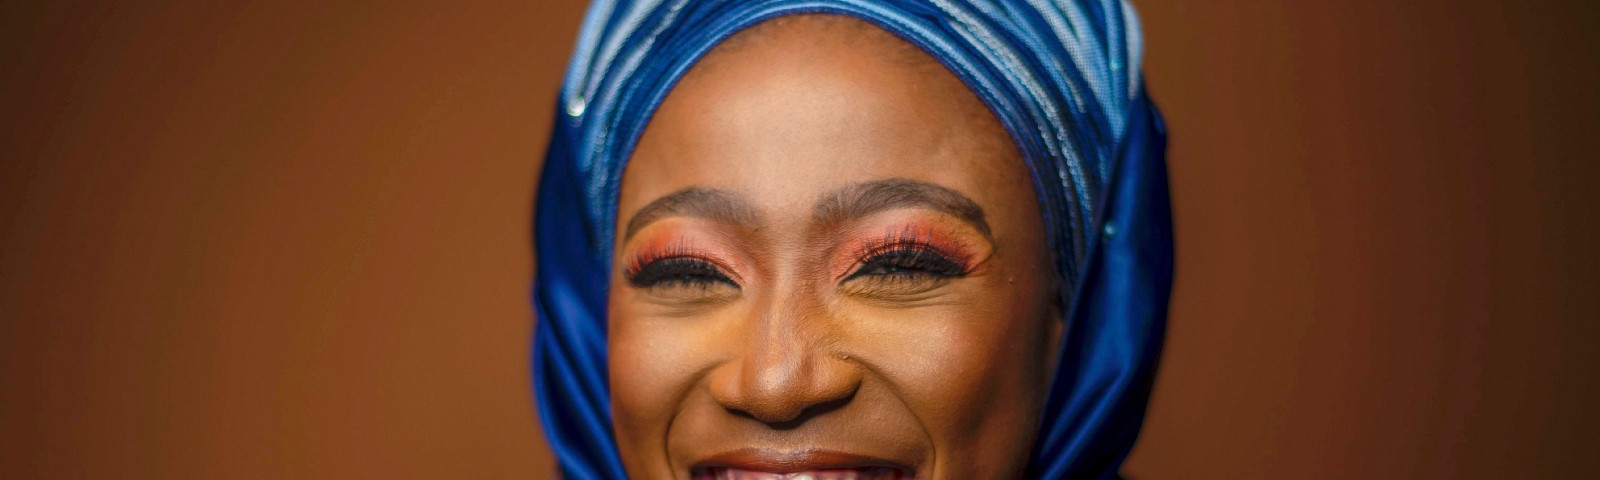 woman in blue hijab smiling